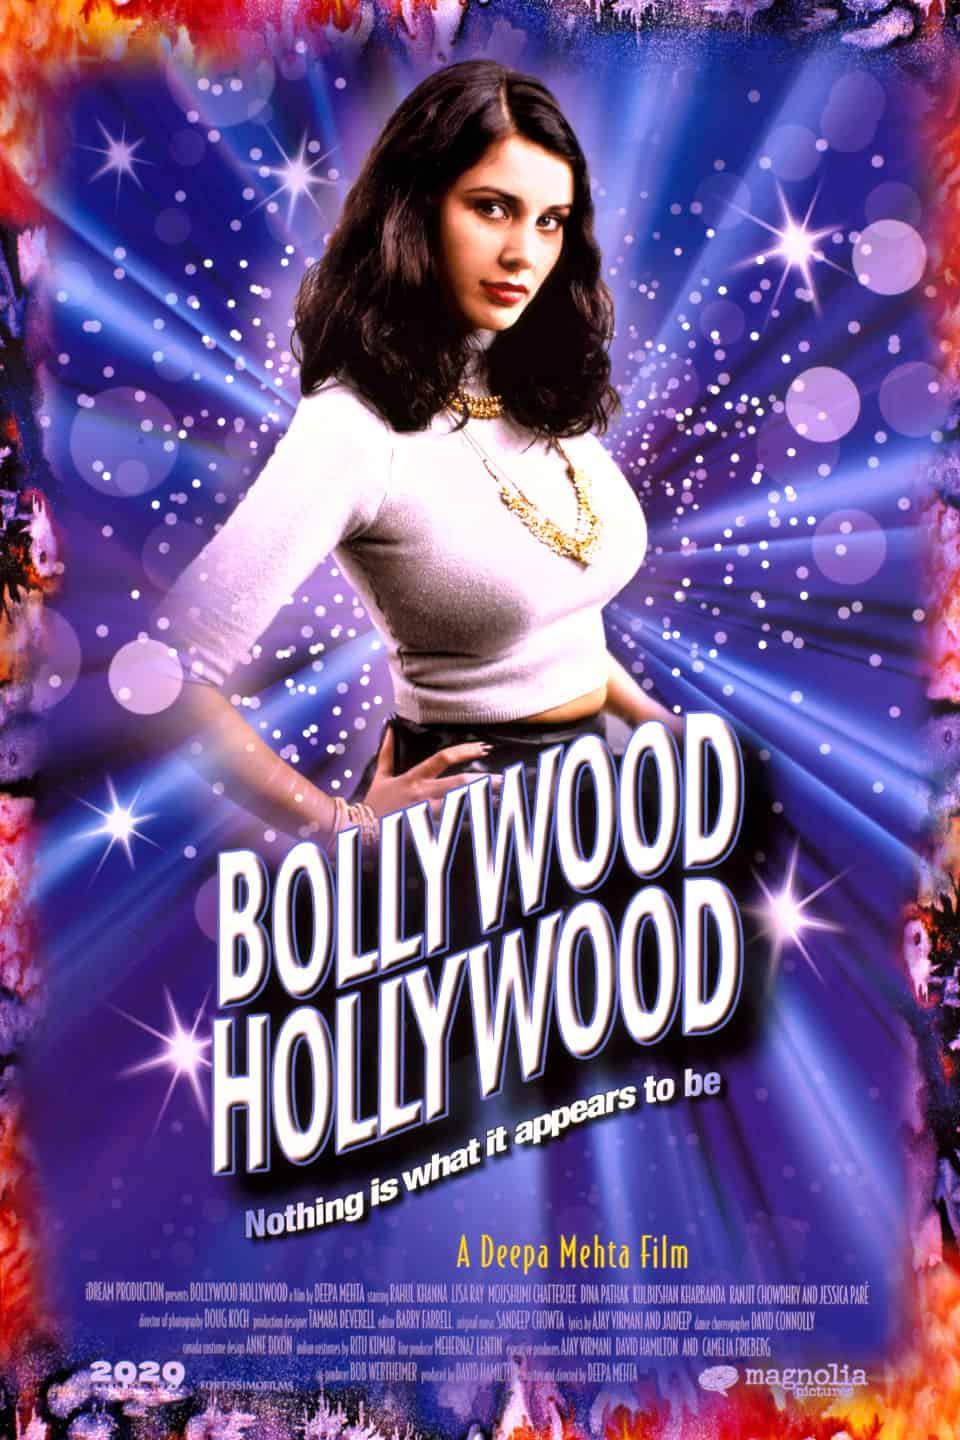 Bollywood/Hollywood, 2002